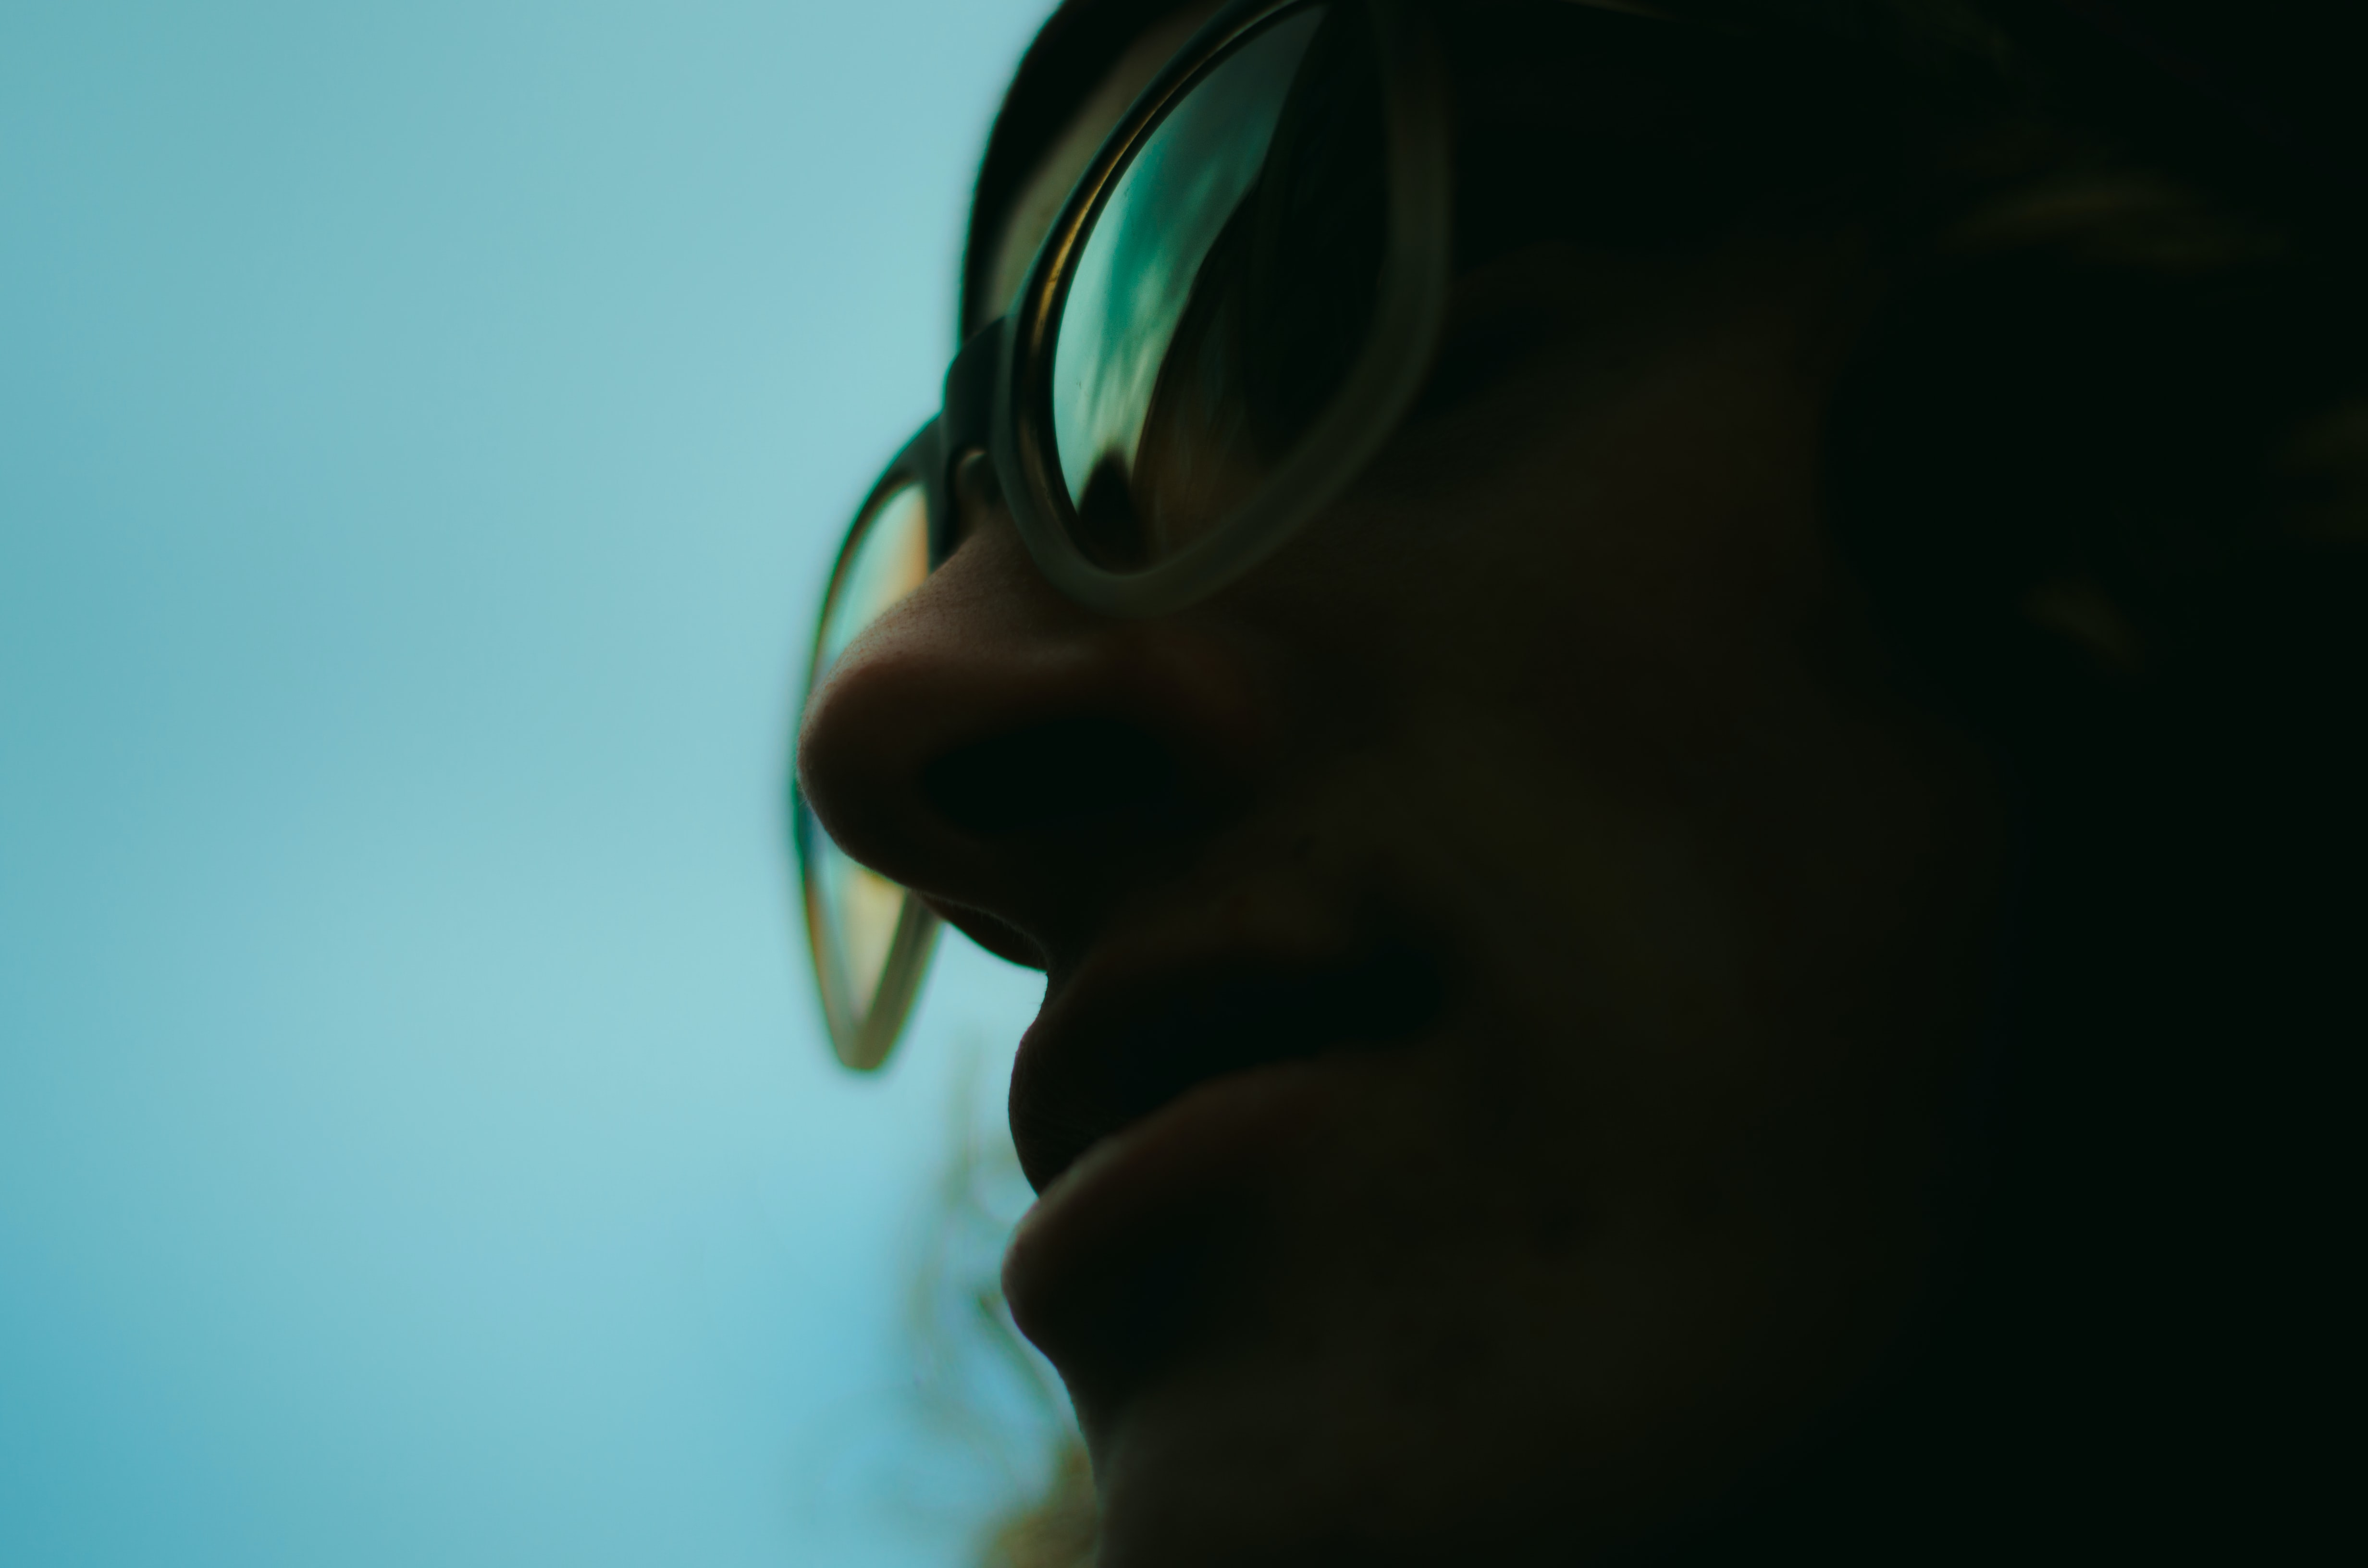 close up photo of person wearing glasses with teal background